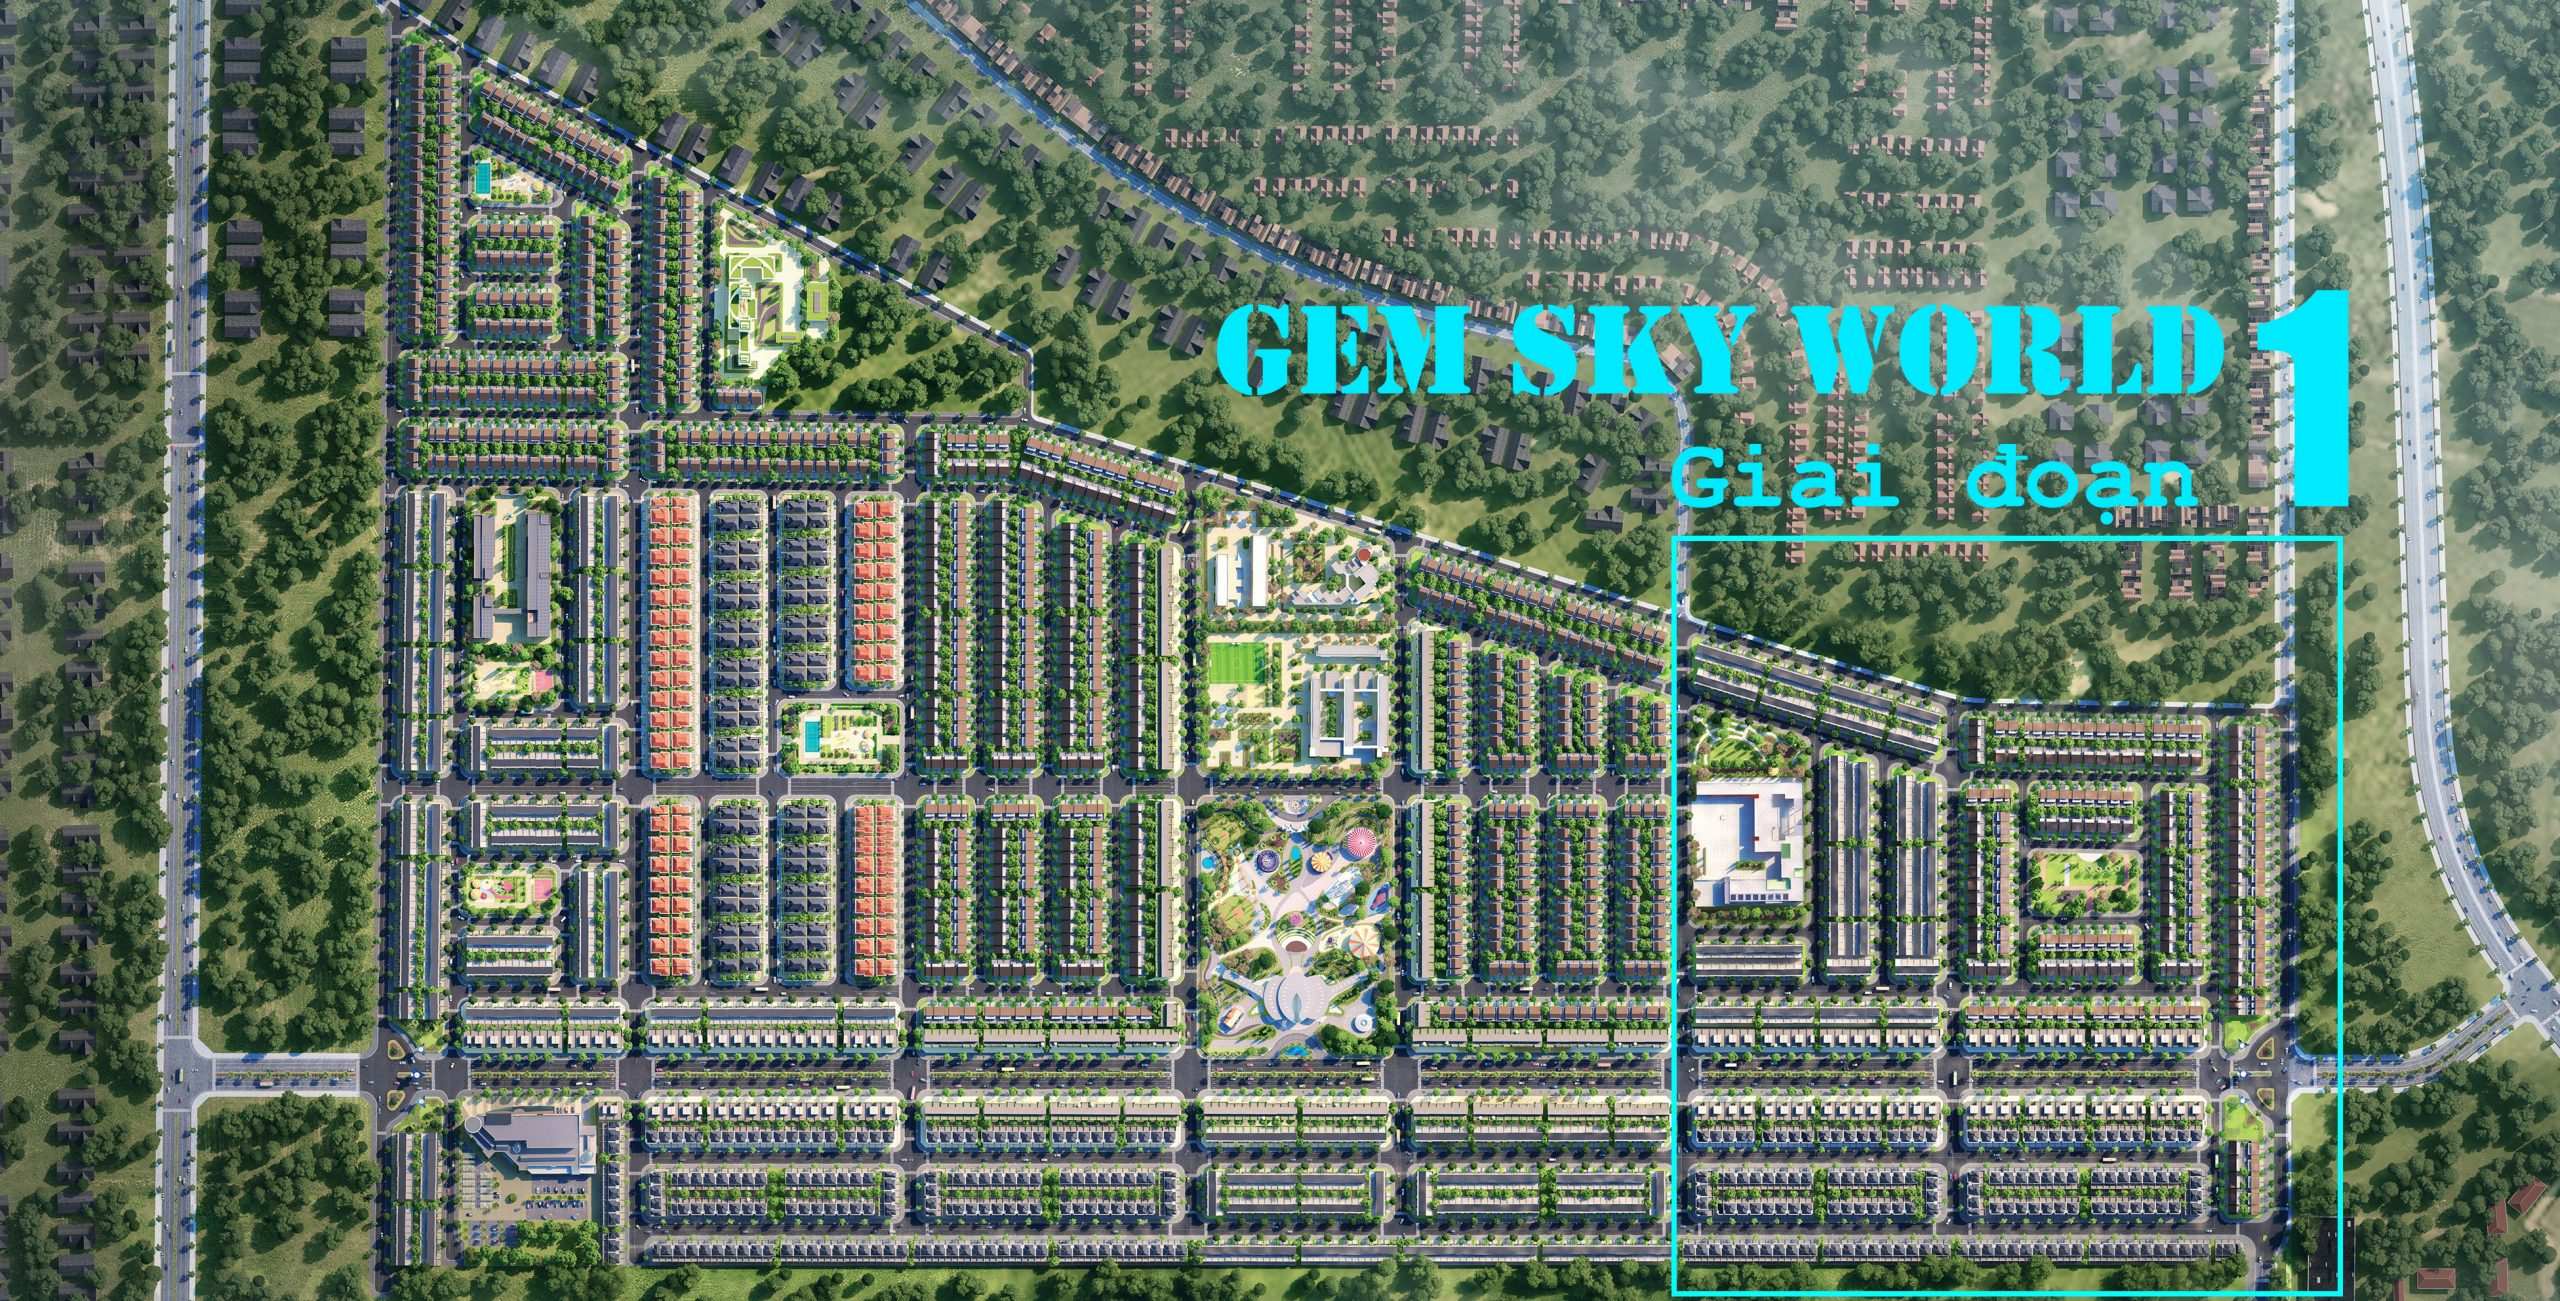 Mặt bằng Gem Sky World Giai đoạn 1 2 scaled - GEM SKY WORLD